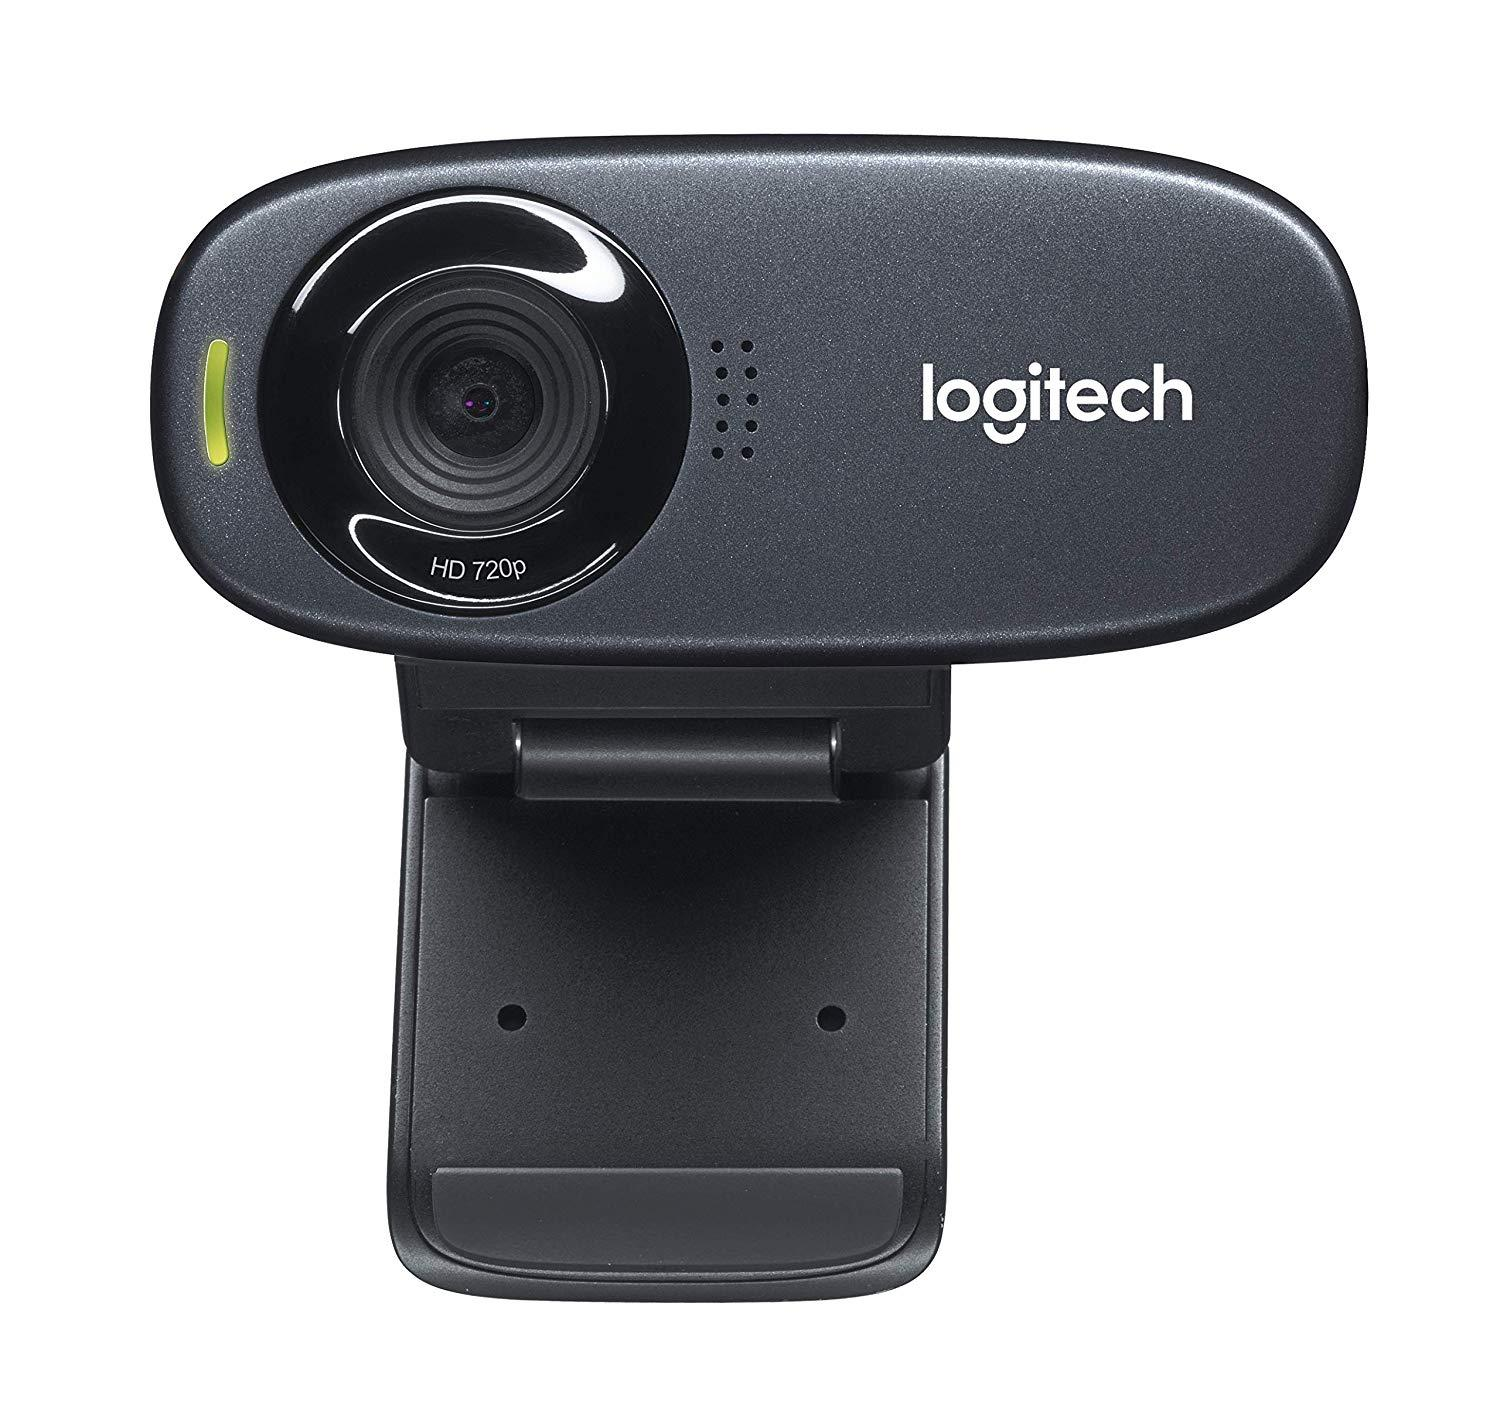 Logitech C310 - HD 720p Webcam - Sturdy Design